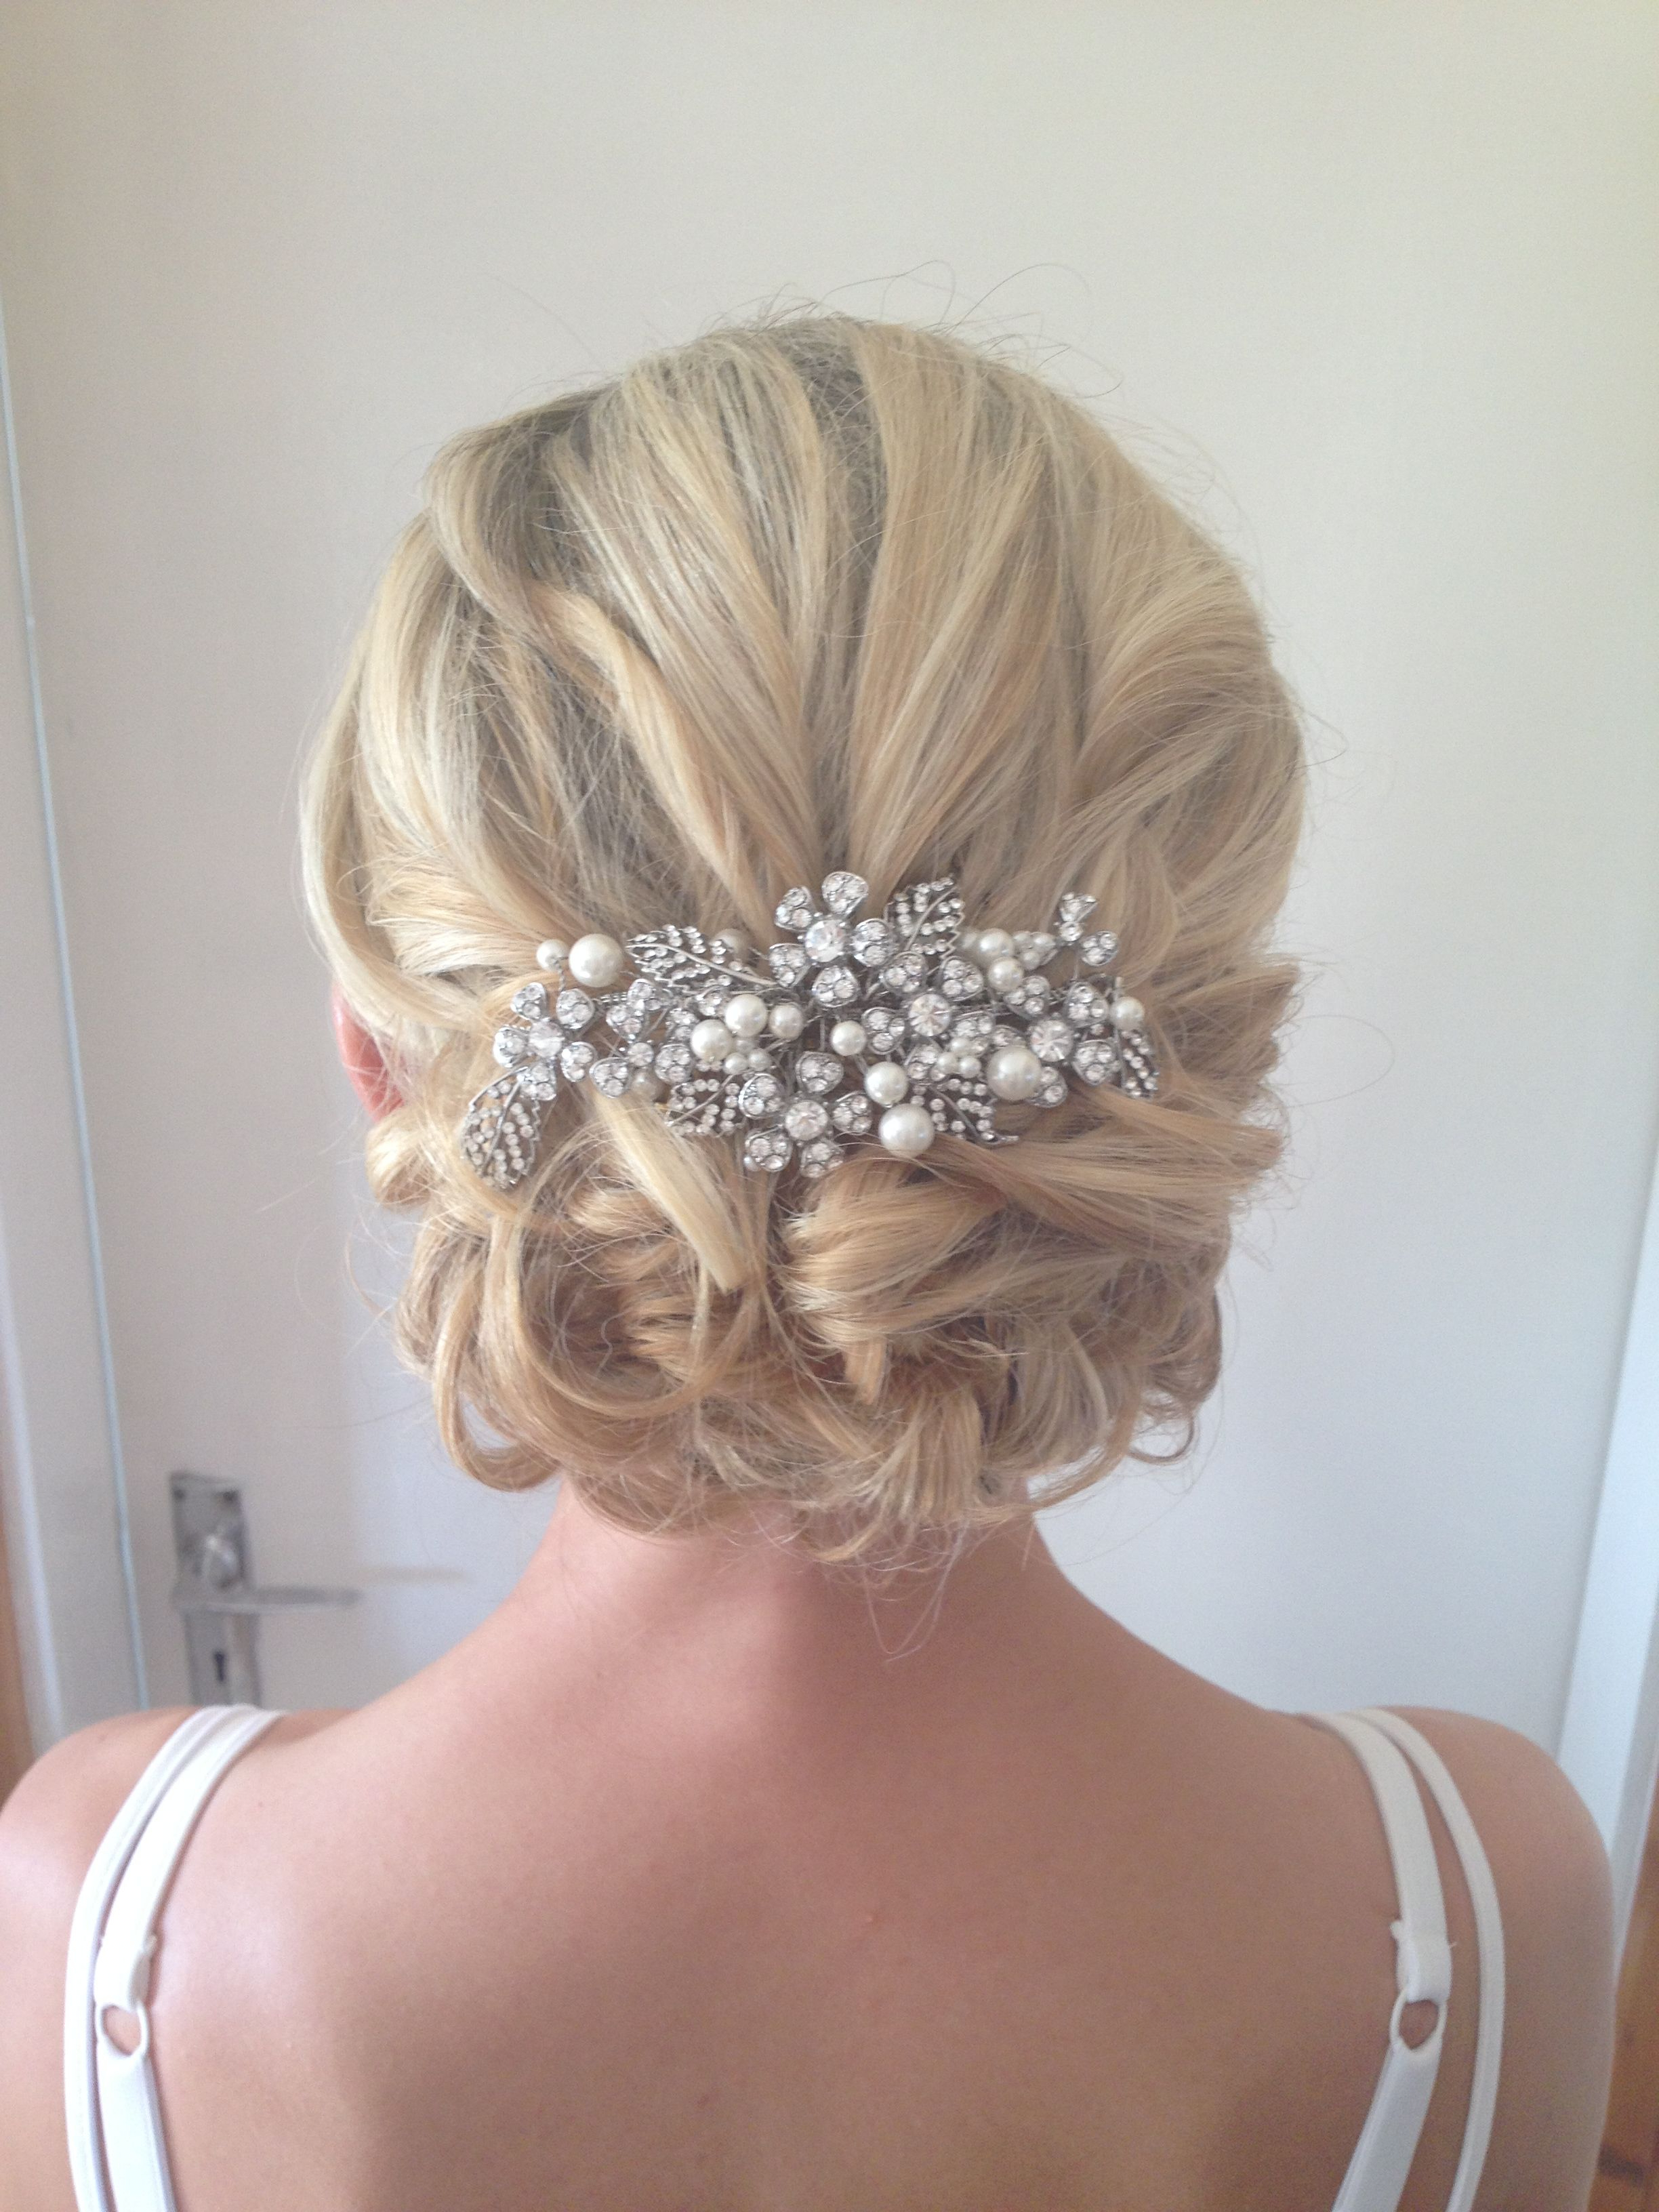 Pinterest With Regard To Most Up To Date Bridal Chignon Hairstyles With Headband And Veil (View 13 of 20)